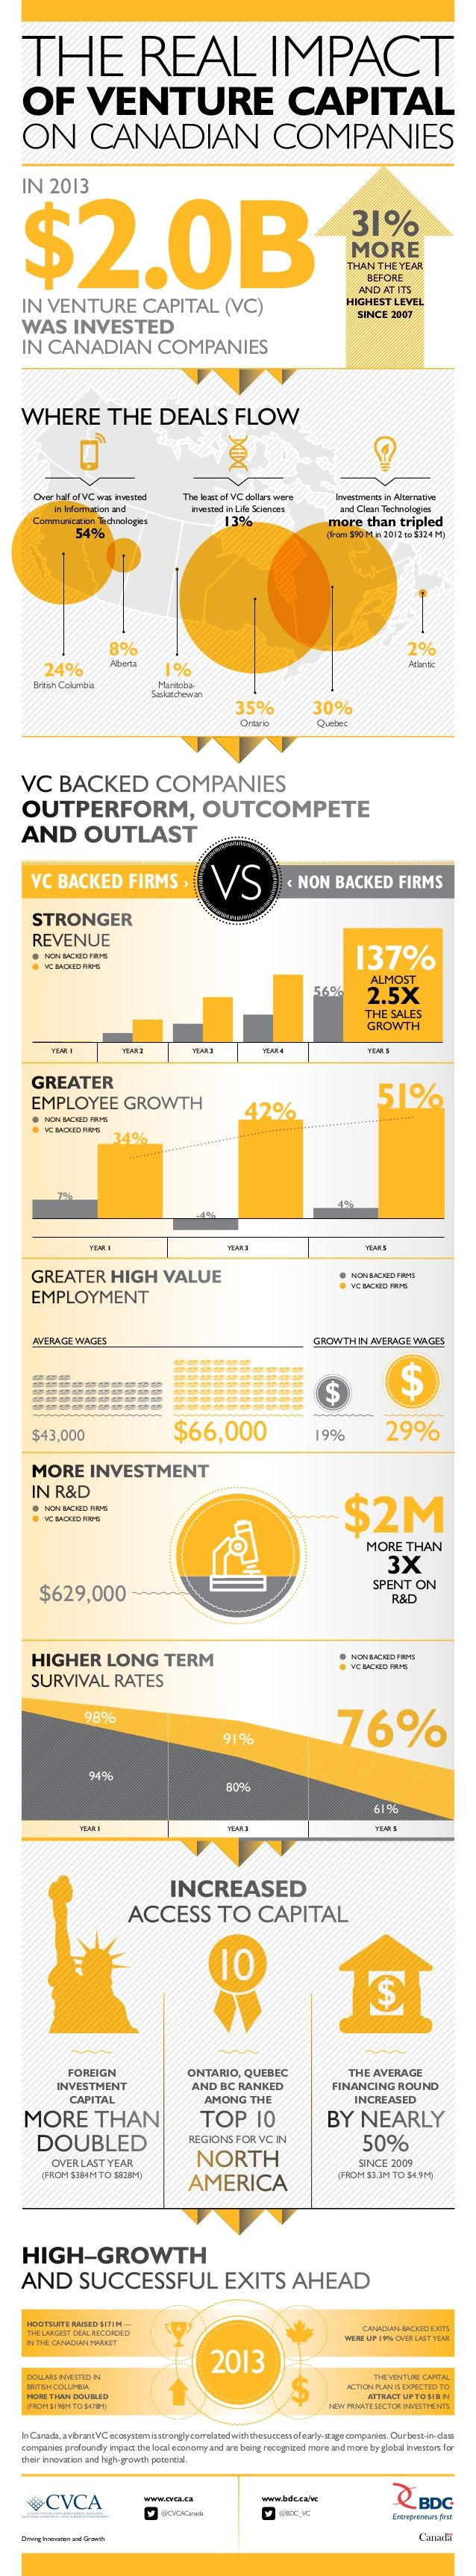 The real impact of venture capital on Canadian companies by BDC via slideshare